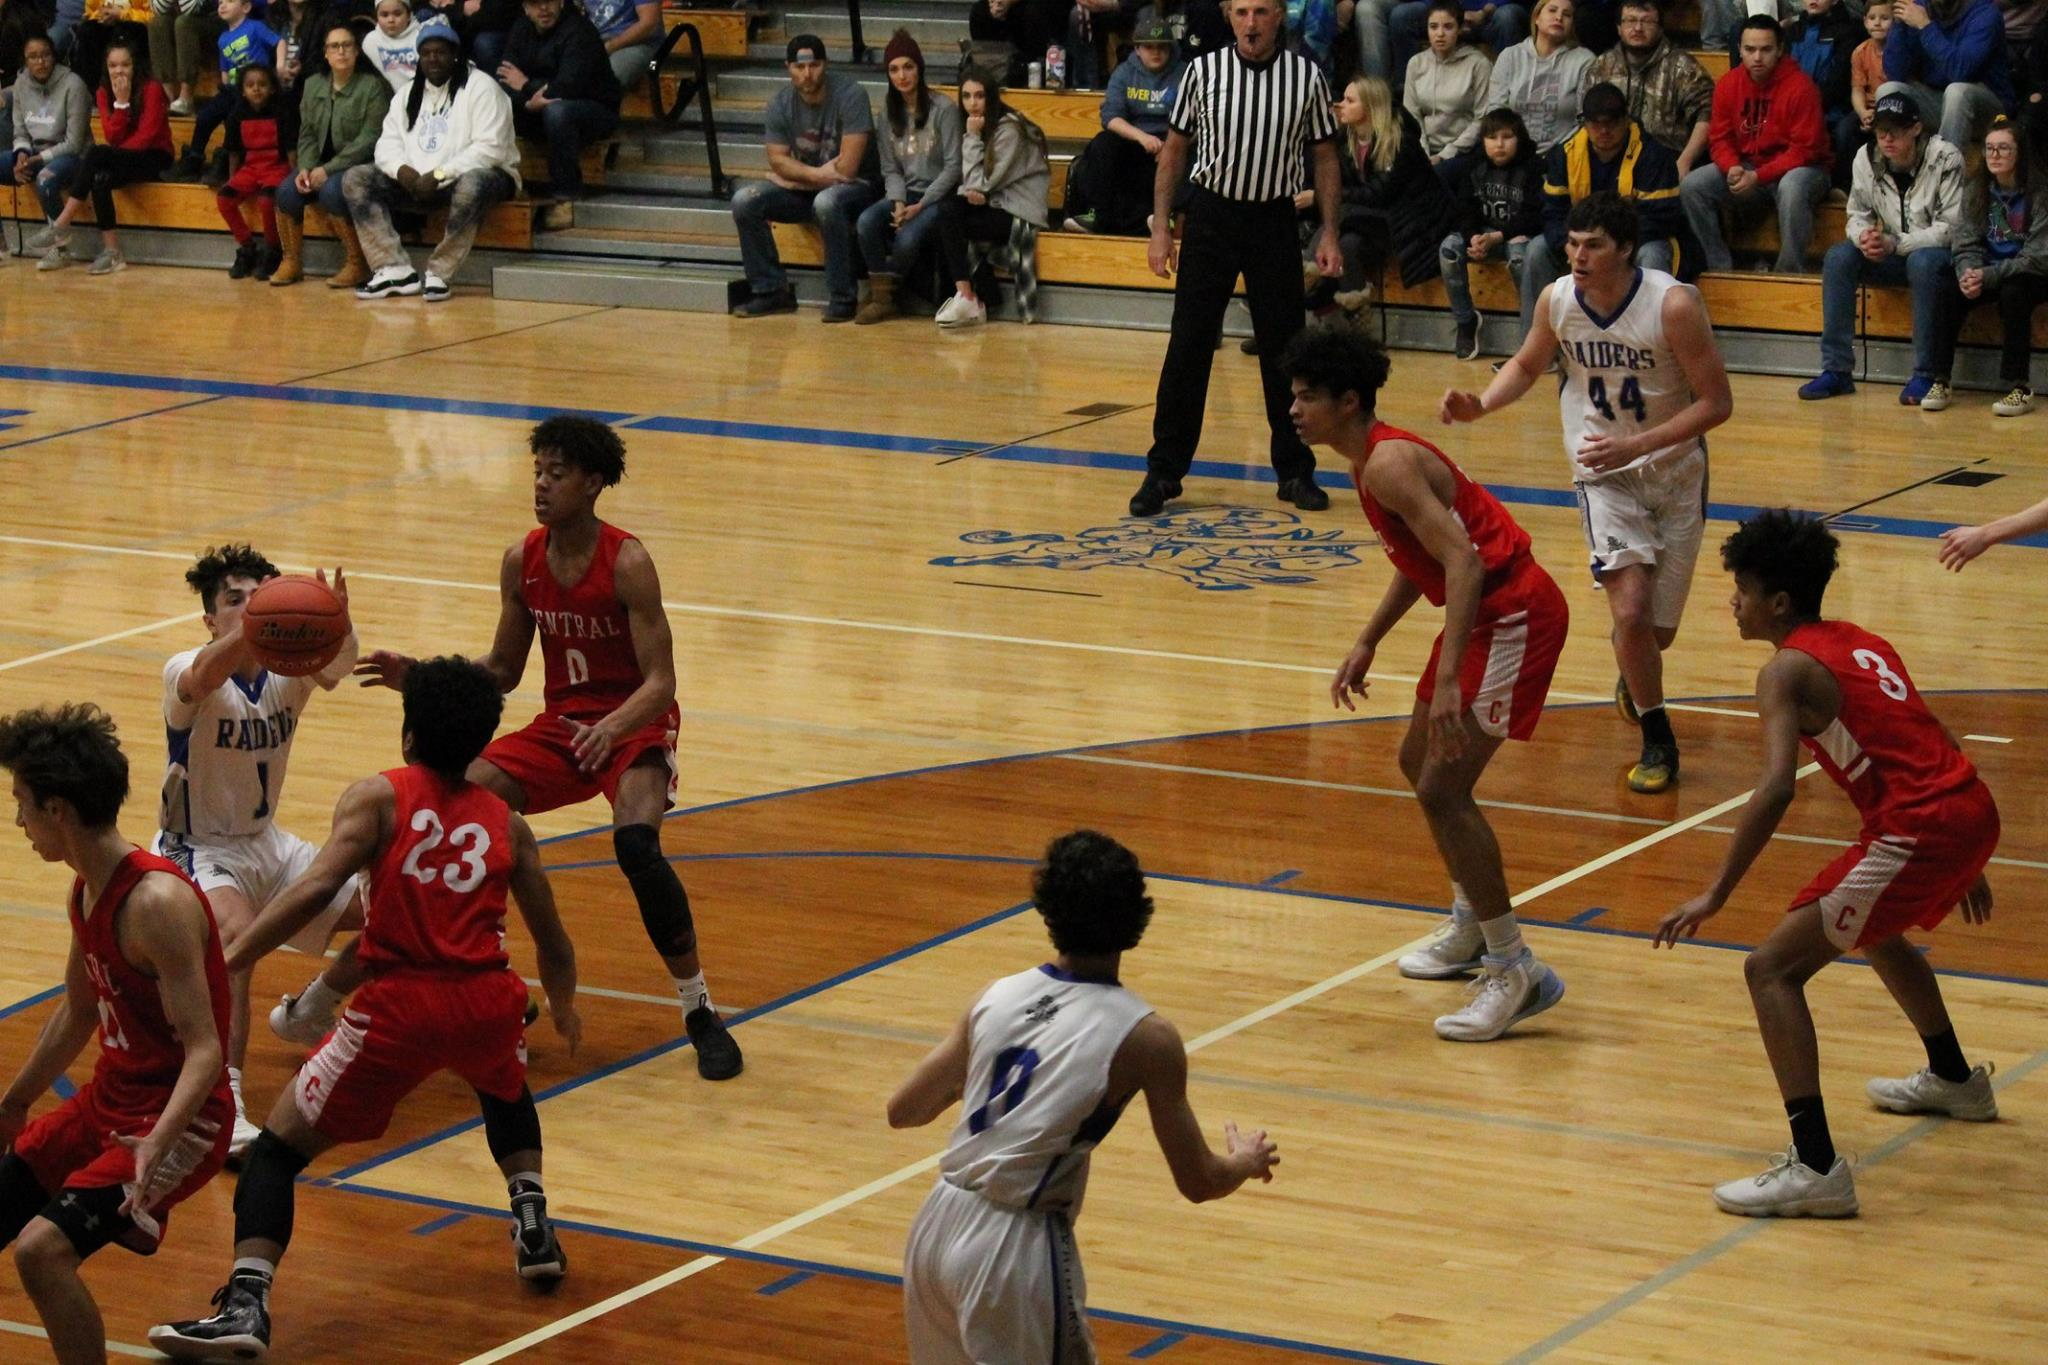 - 6-foot-6 F, Isaac Williams is in his 2nd season with the Sacred Hoops AAU Program.TJ Hay's RC Central Cobblers had an 8-12 regular season and will be looking to make that next leap into the upper echelon's of the AA ranks!